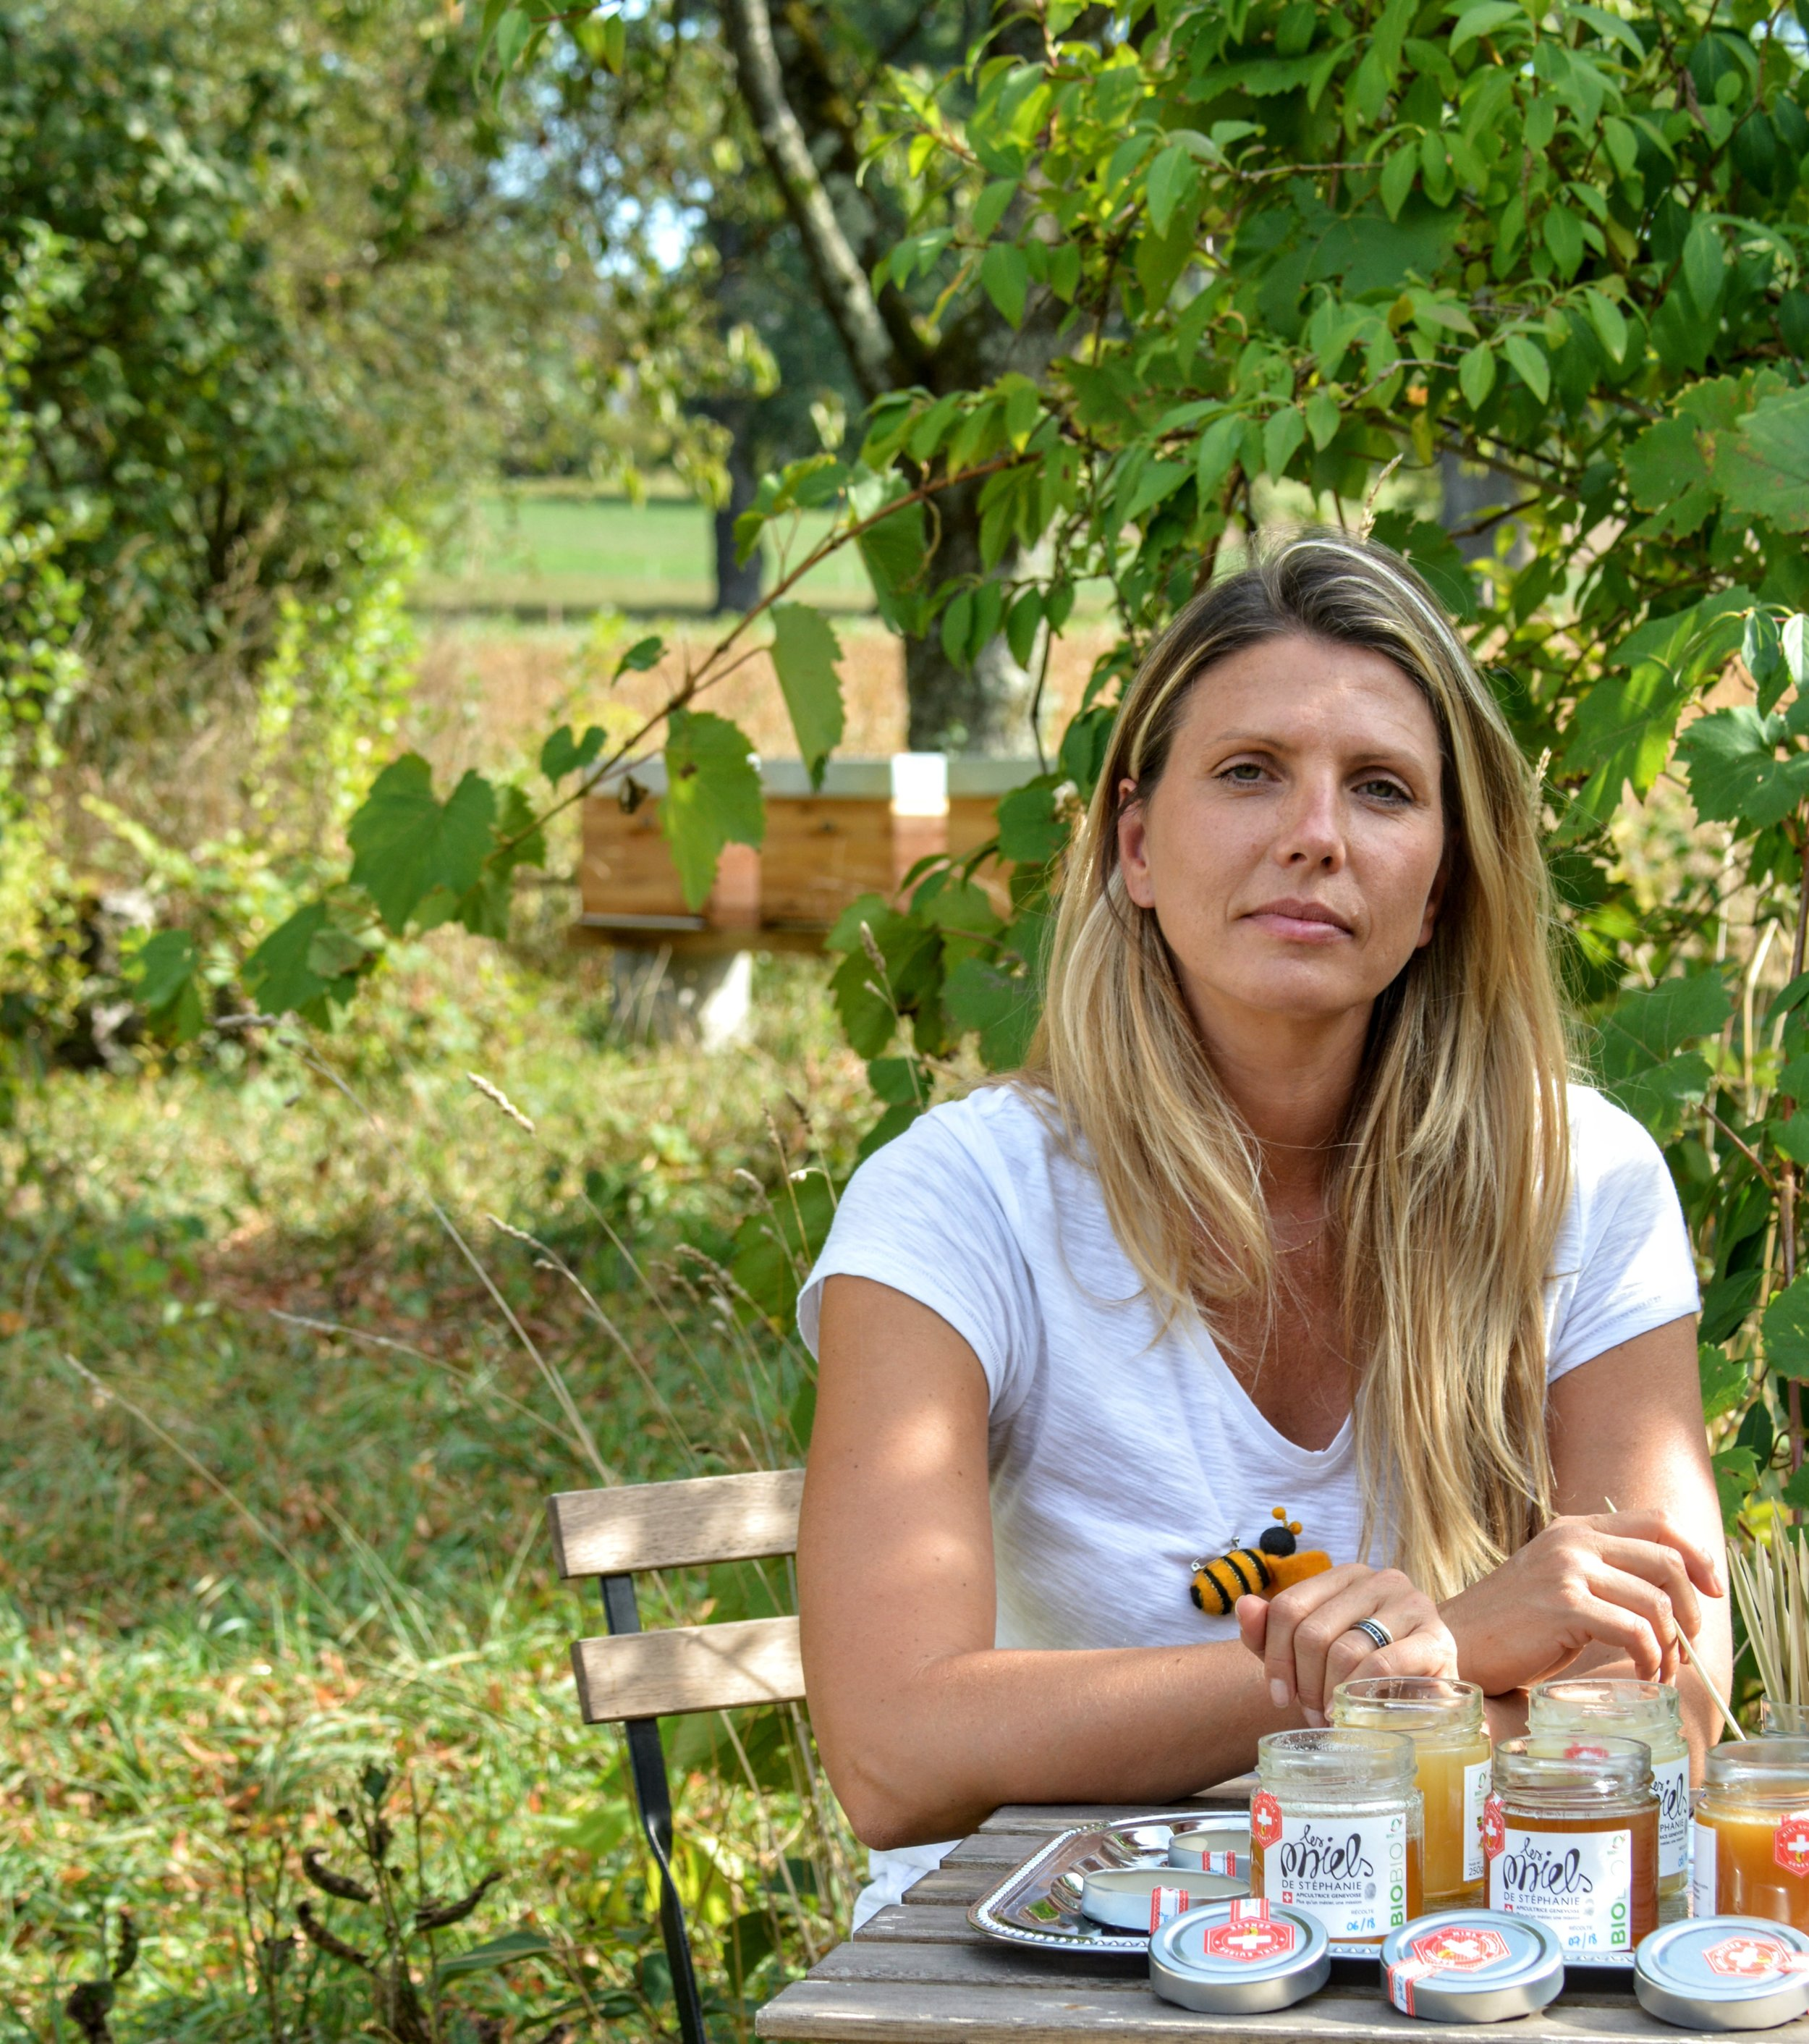 Stéphanie Vuadens - A Geneva beekeeper, Stéphanie is the proud mom of two children. It's more than a job for her, it's a life mission: protect our bees, and preserve our ecosystem to maintain the beauty and bio-diversity of our countryside.Always close to nature, Stéphanie's beekeeping is a true calling. A way to transmit knowledge, and a return to wholesome eating. We often say bees are nature's safekeepers. And for Stéphanie, caring for them is a privilege.